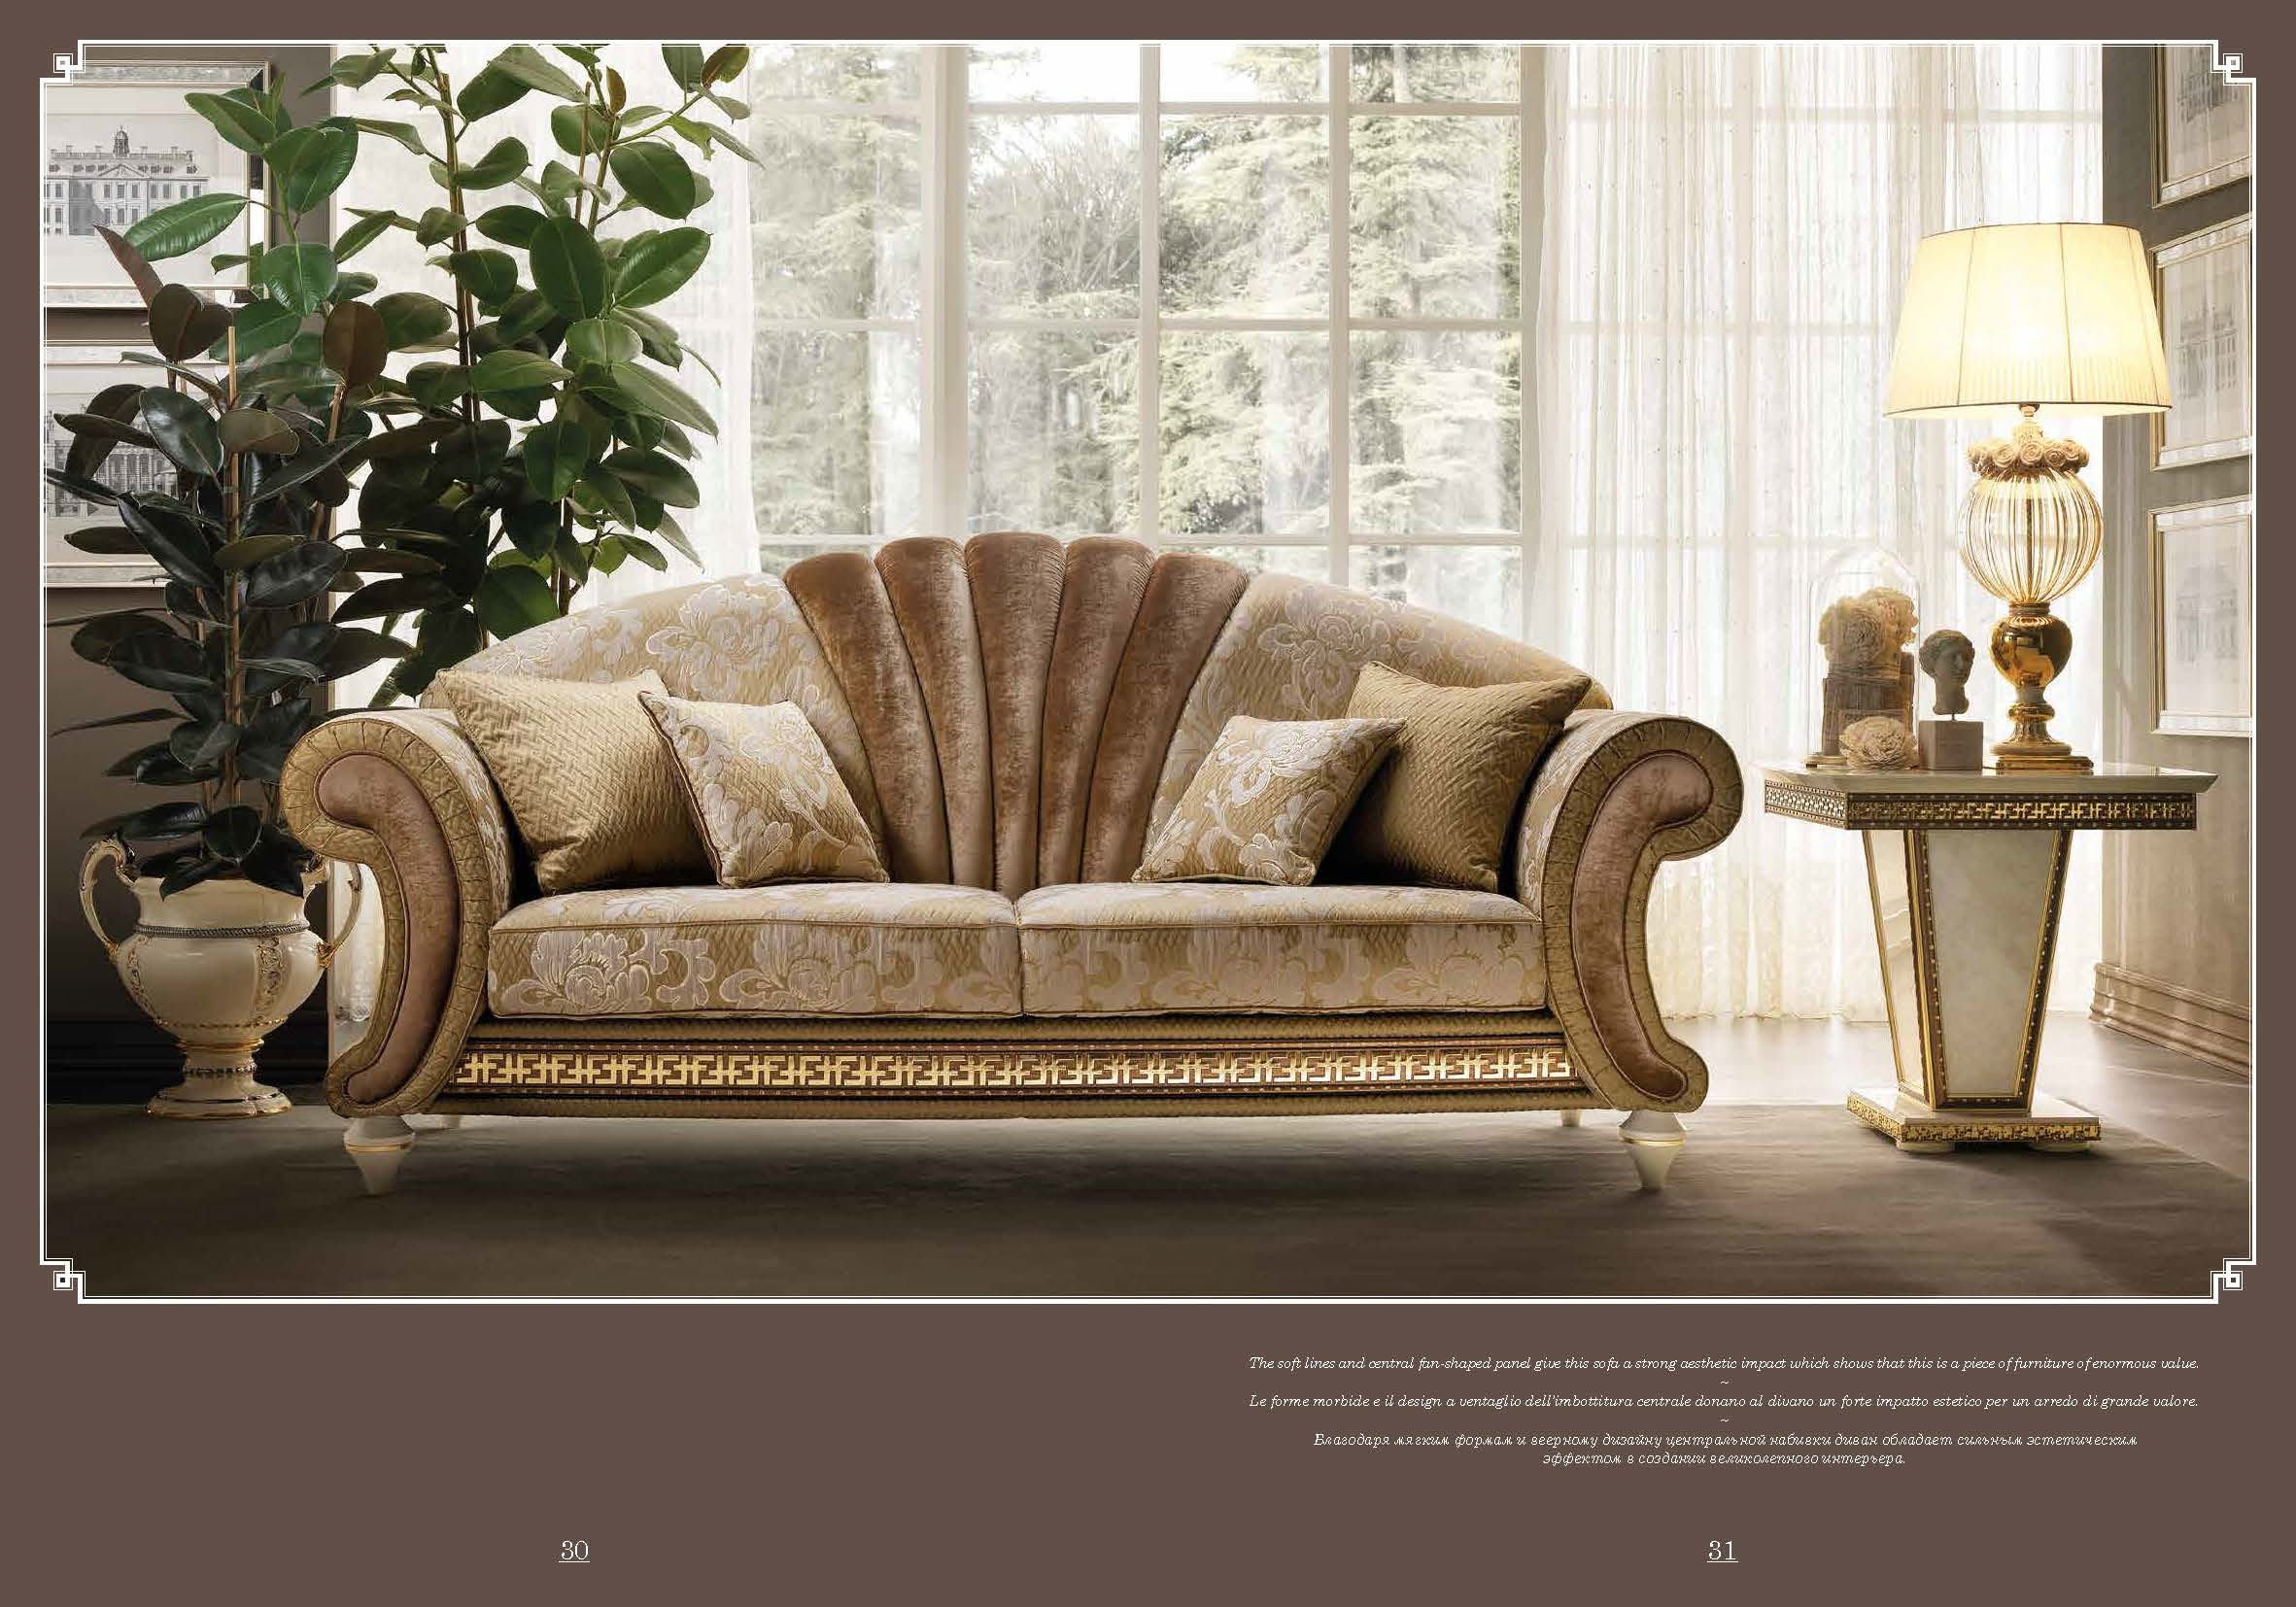 Fantasia Arredoclassic Bedroom Italy Collections